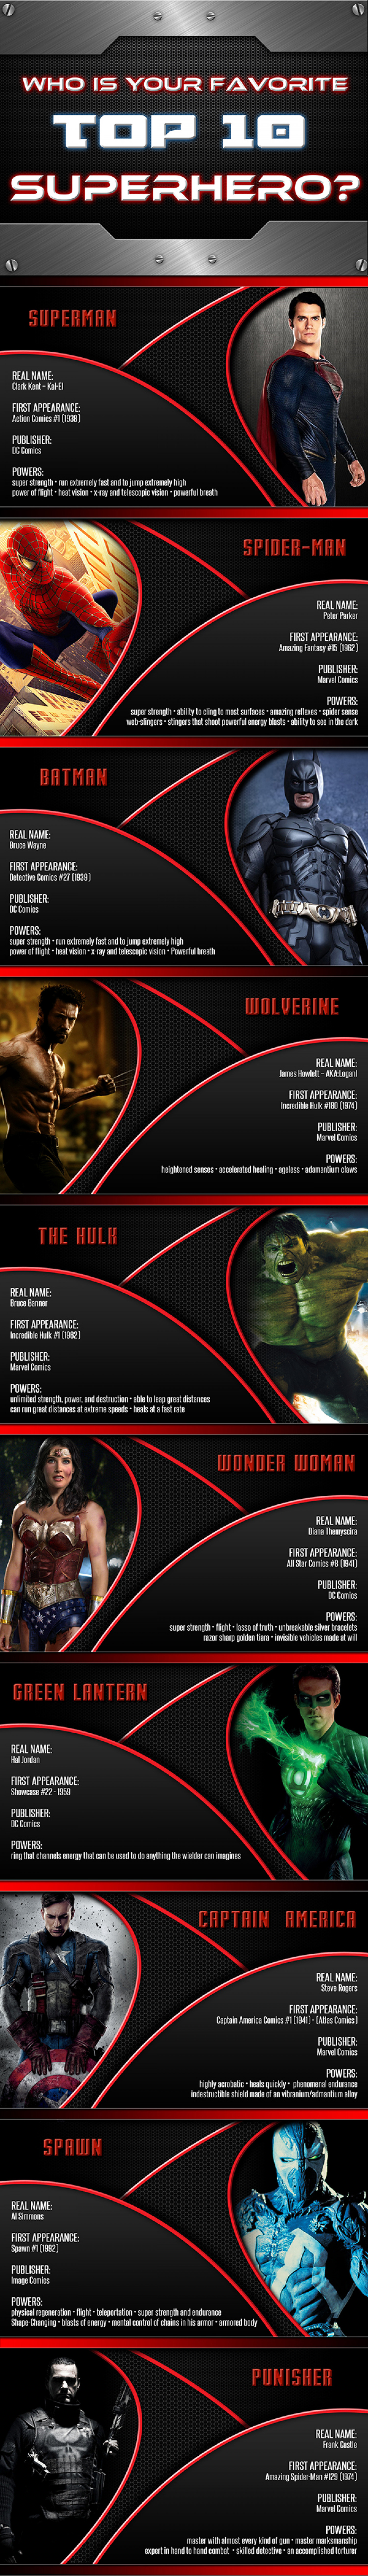 Who is your favorite superhero? Infographic